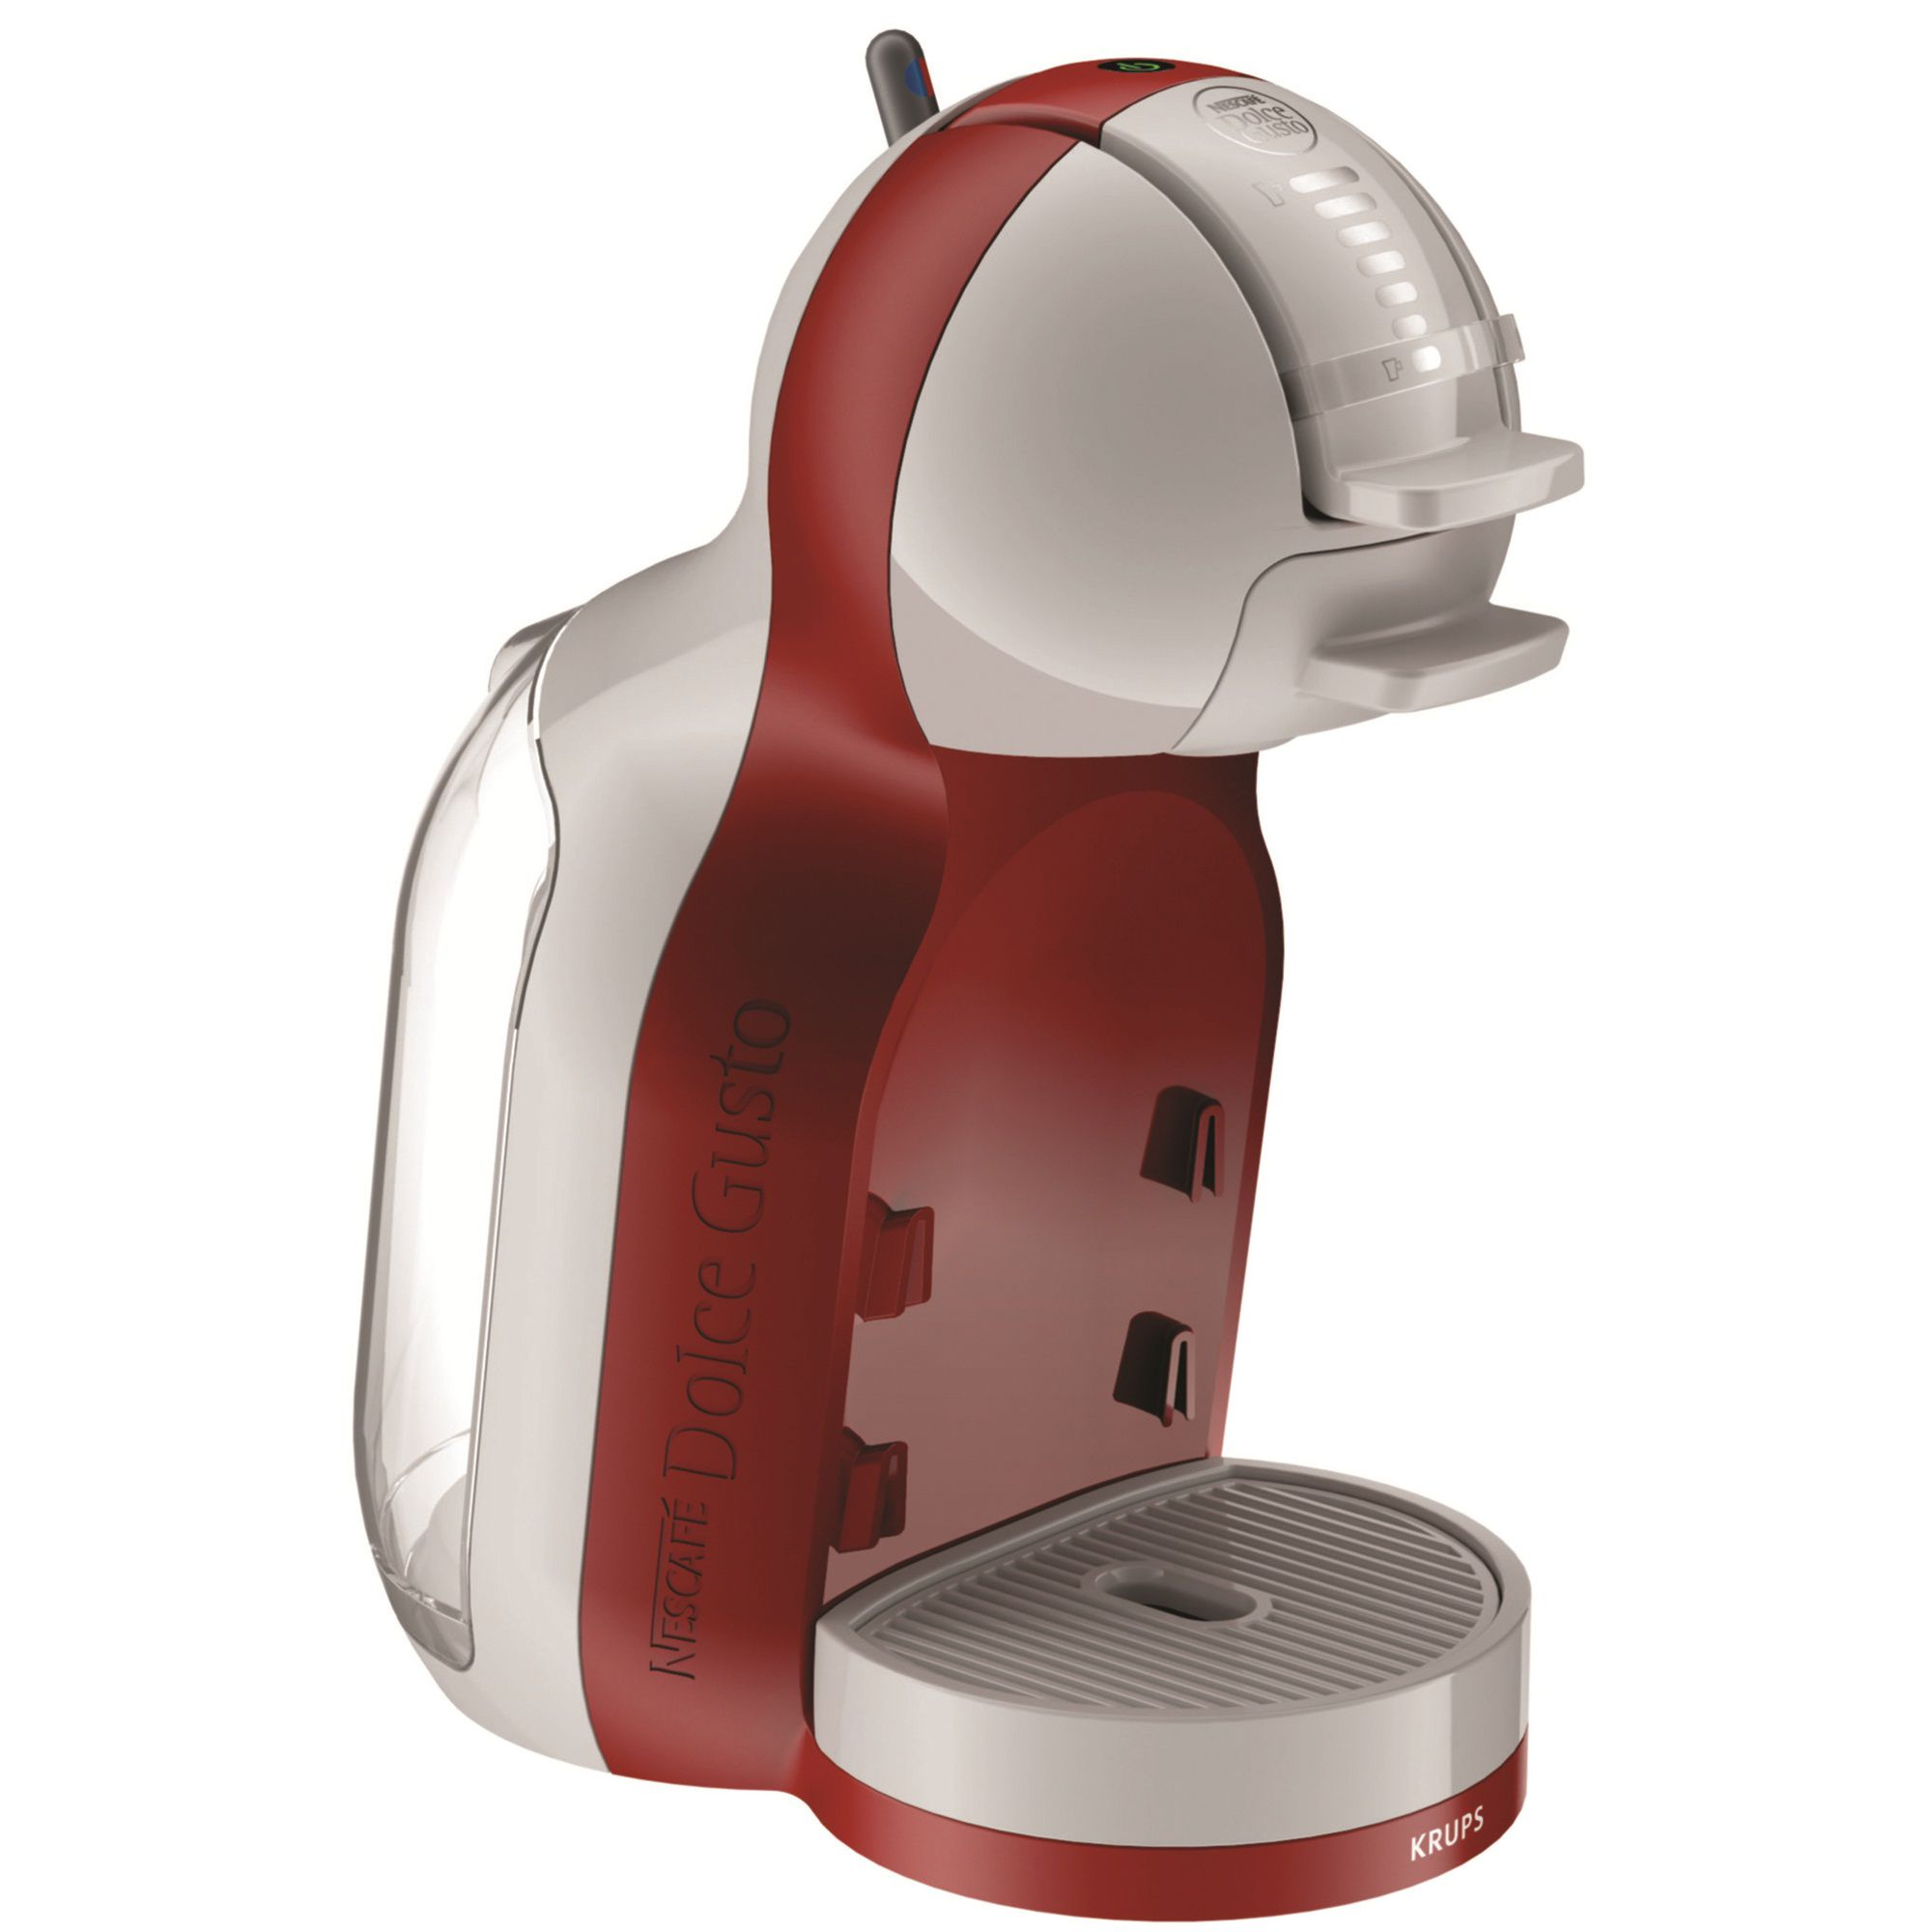 Krups Nescafe Dolce Gusto Mini Tech Specs available on http ...